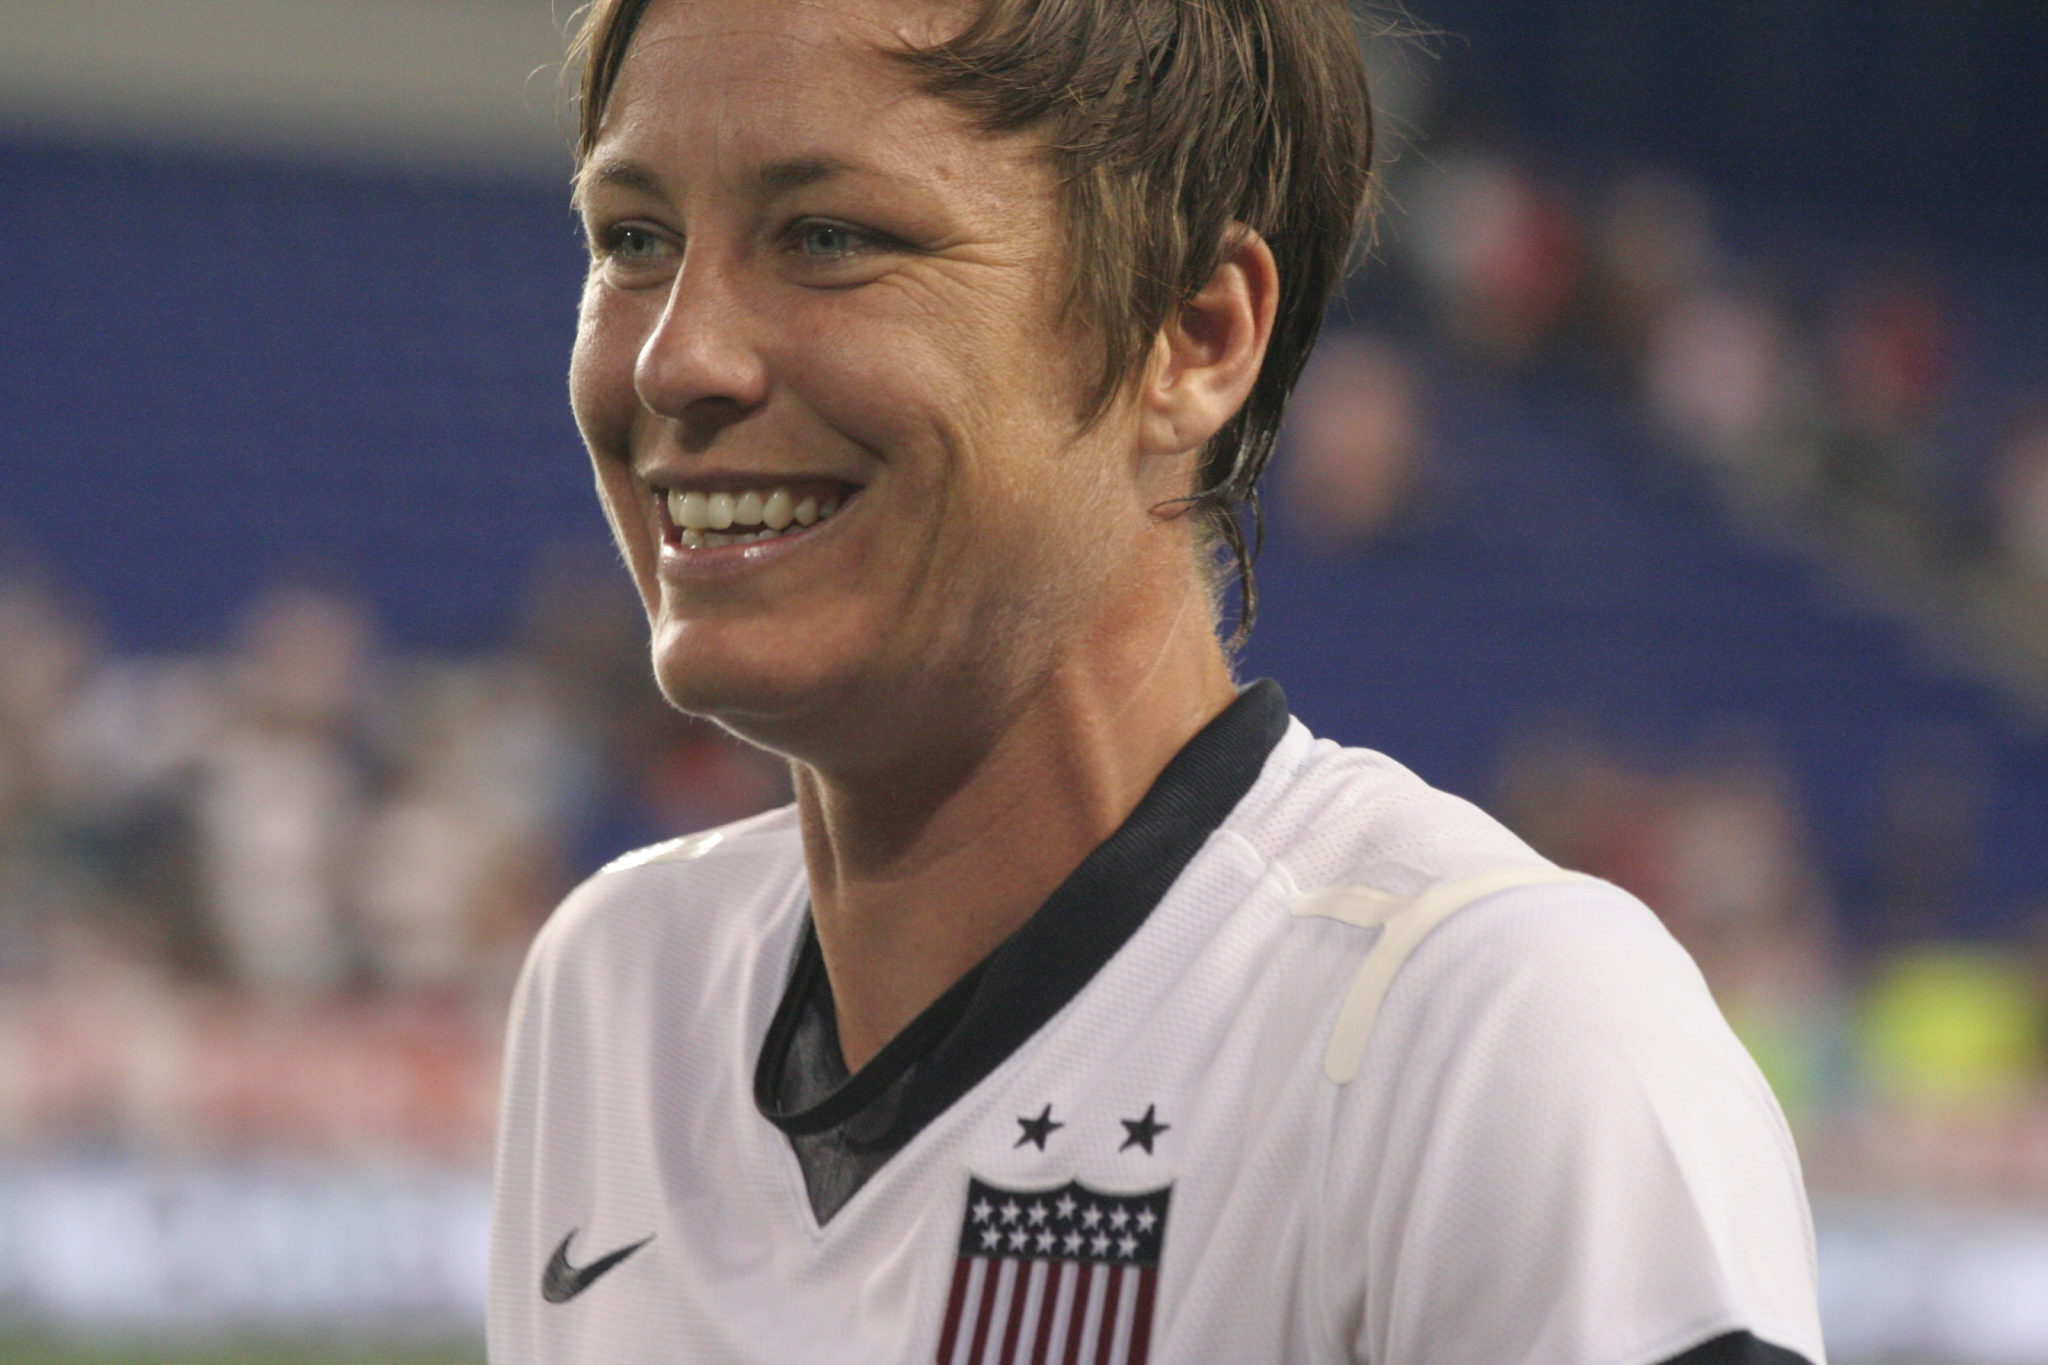 Abby Wambach scored twice as the U.S. women beat North Korea in the Algarve Cup 7th place match. (Photo Copyright Meg Linehan for The Equalizer)